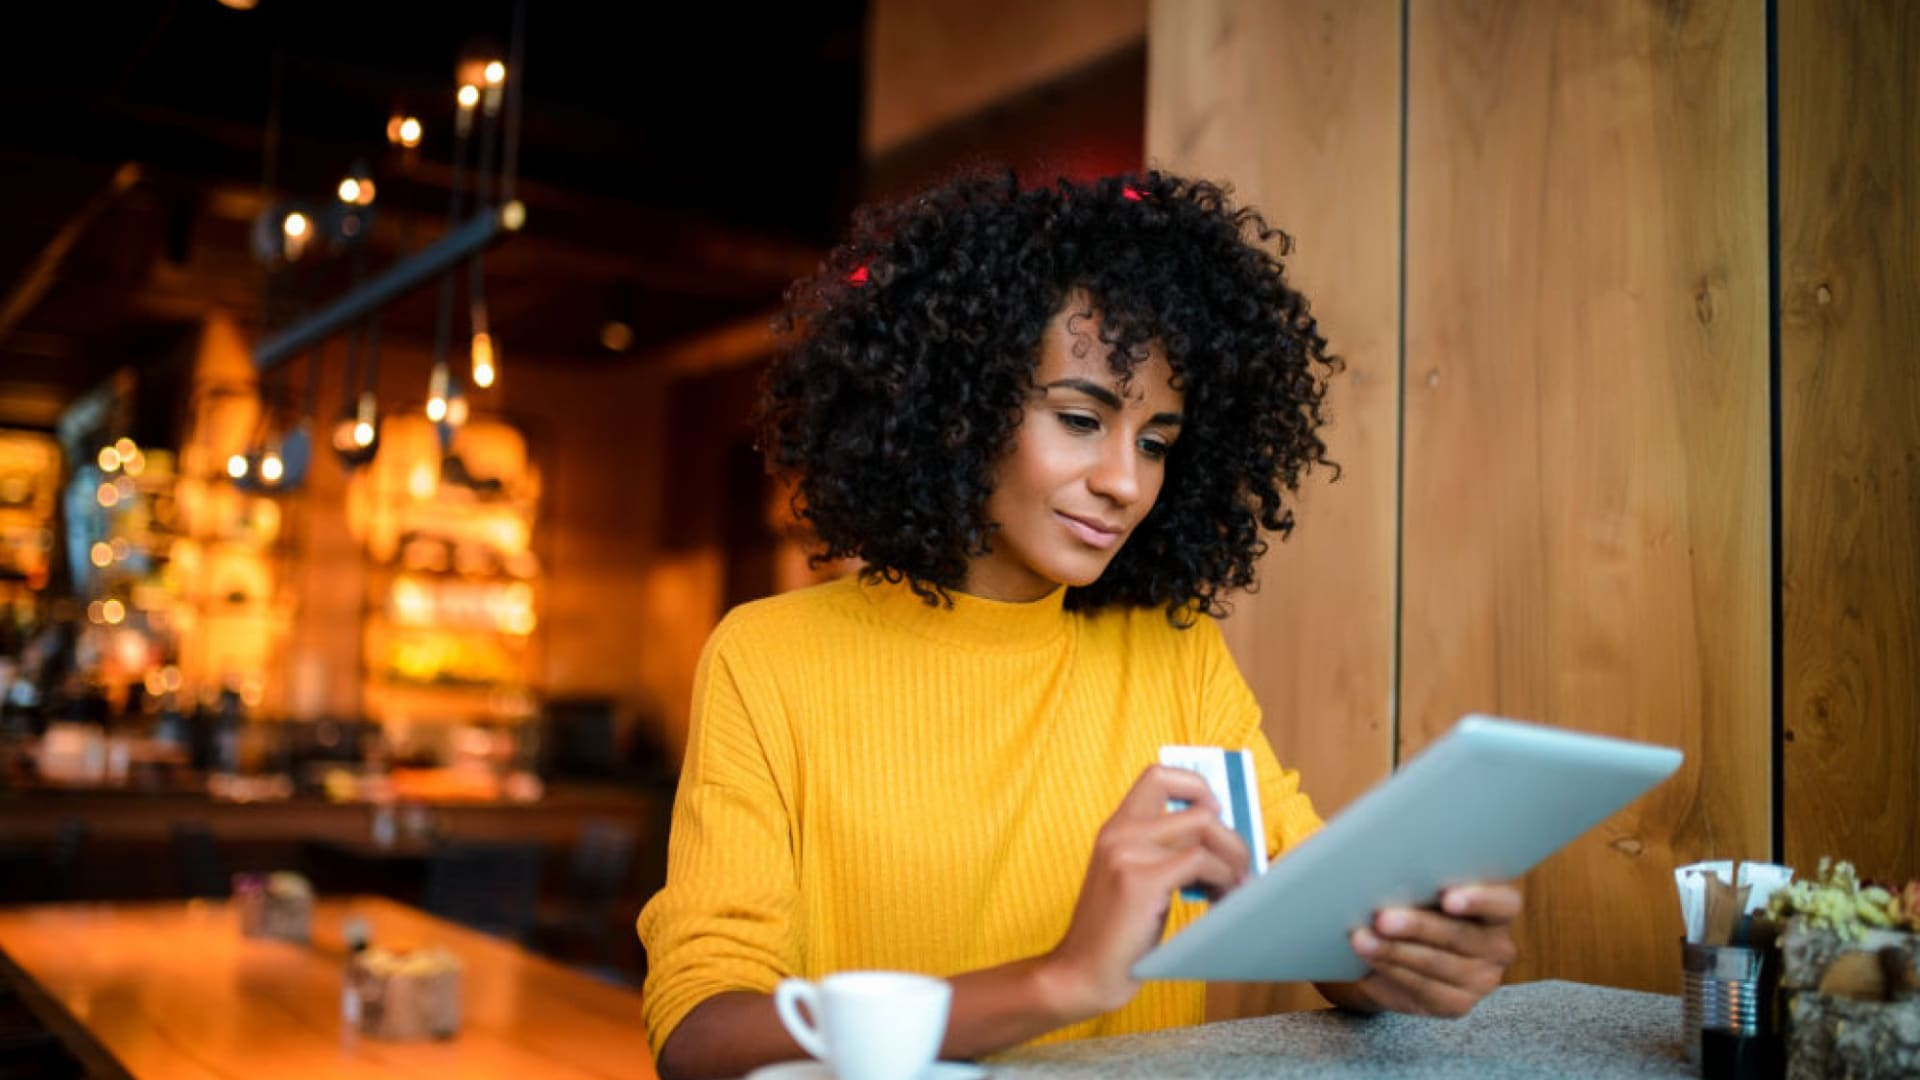 Small Businesses Embrace New Technologies to Meet Changing Consumer Behaviors